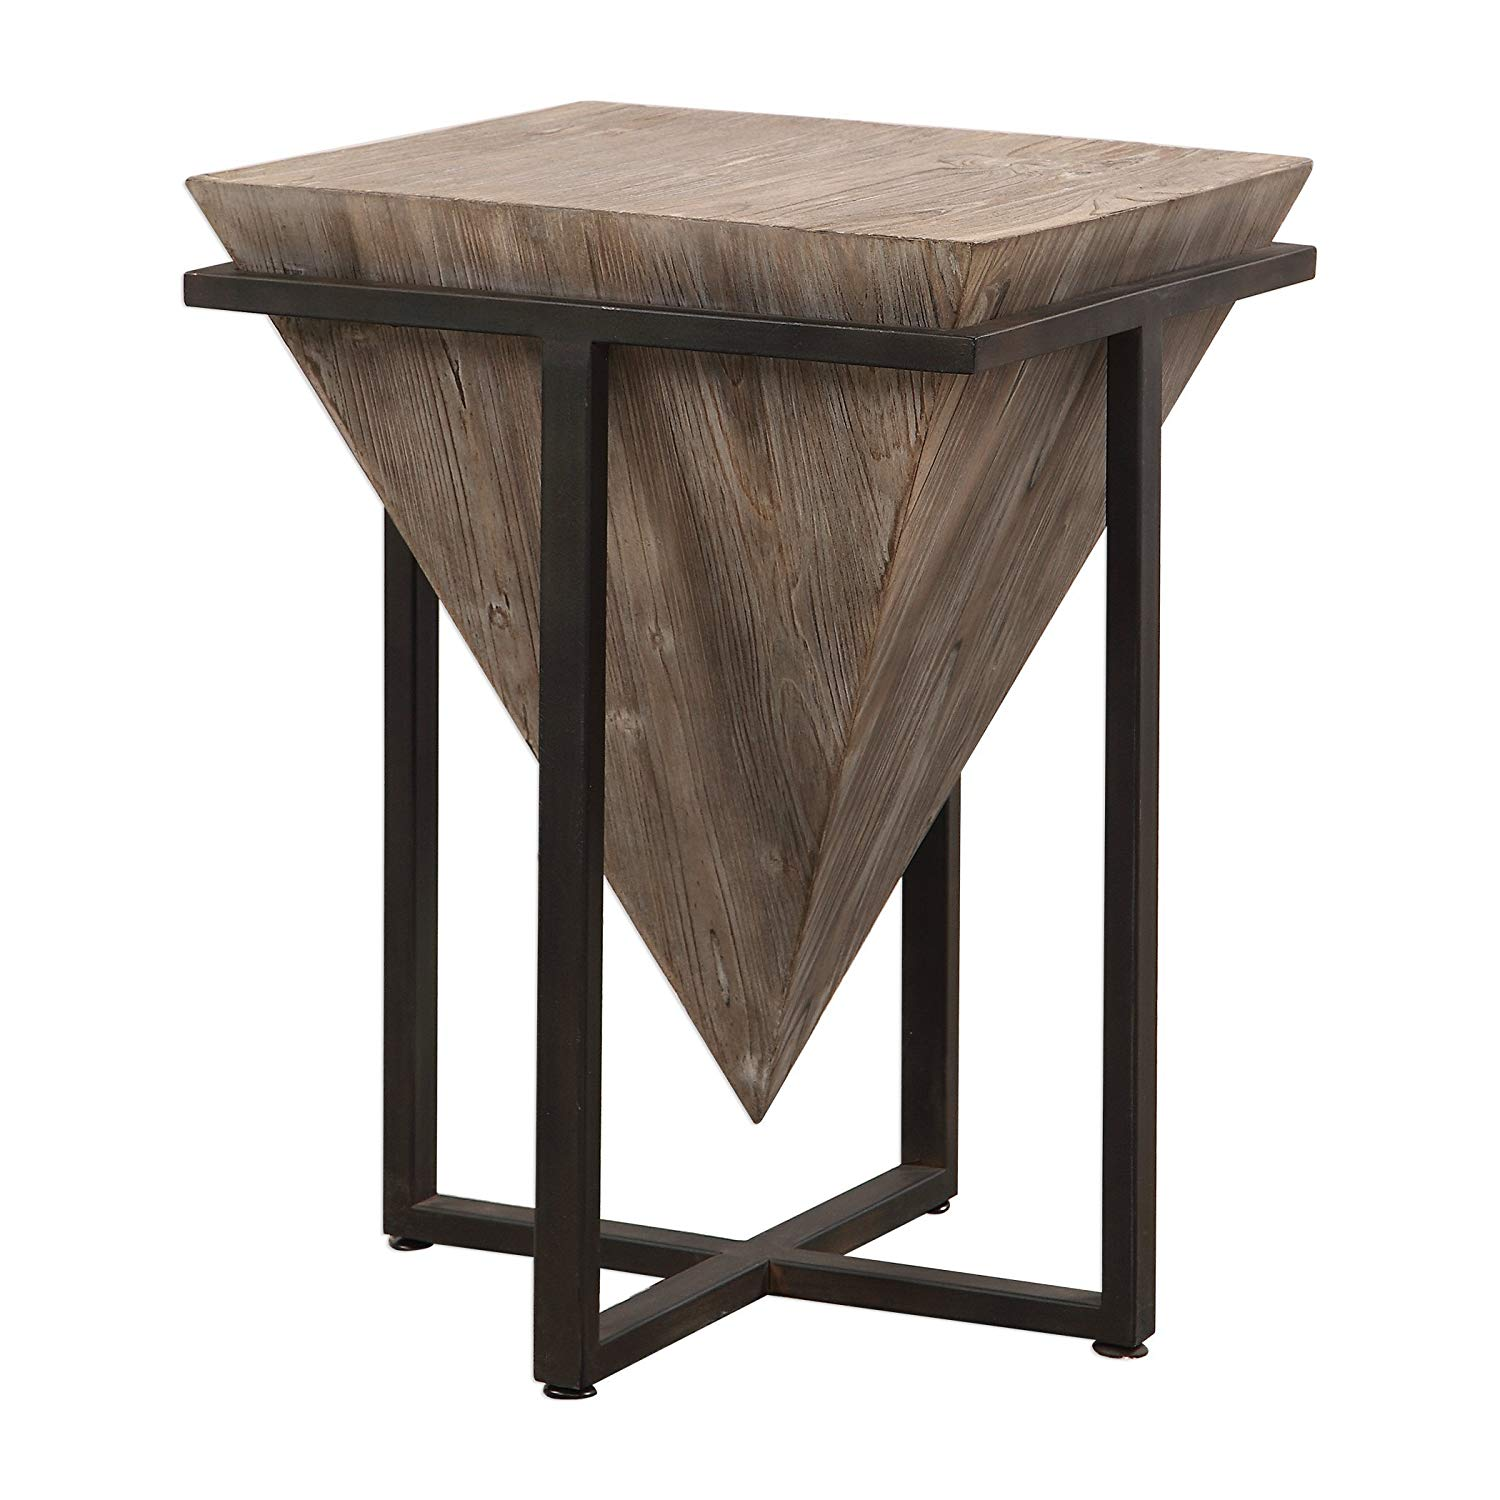 swanky home modern rustic industrial pyramid end wood accent table geometric iron block kitchen dining glass bar cabinet decoration accessories half moon tables furniture perspex